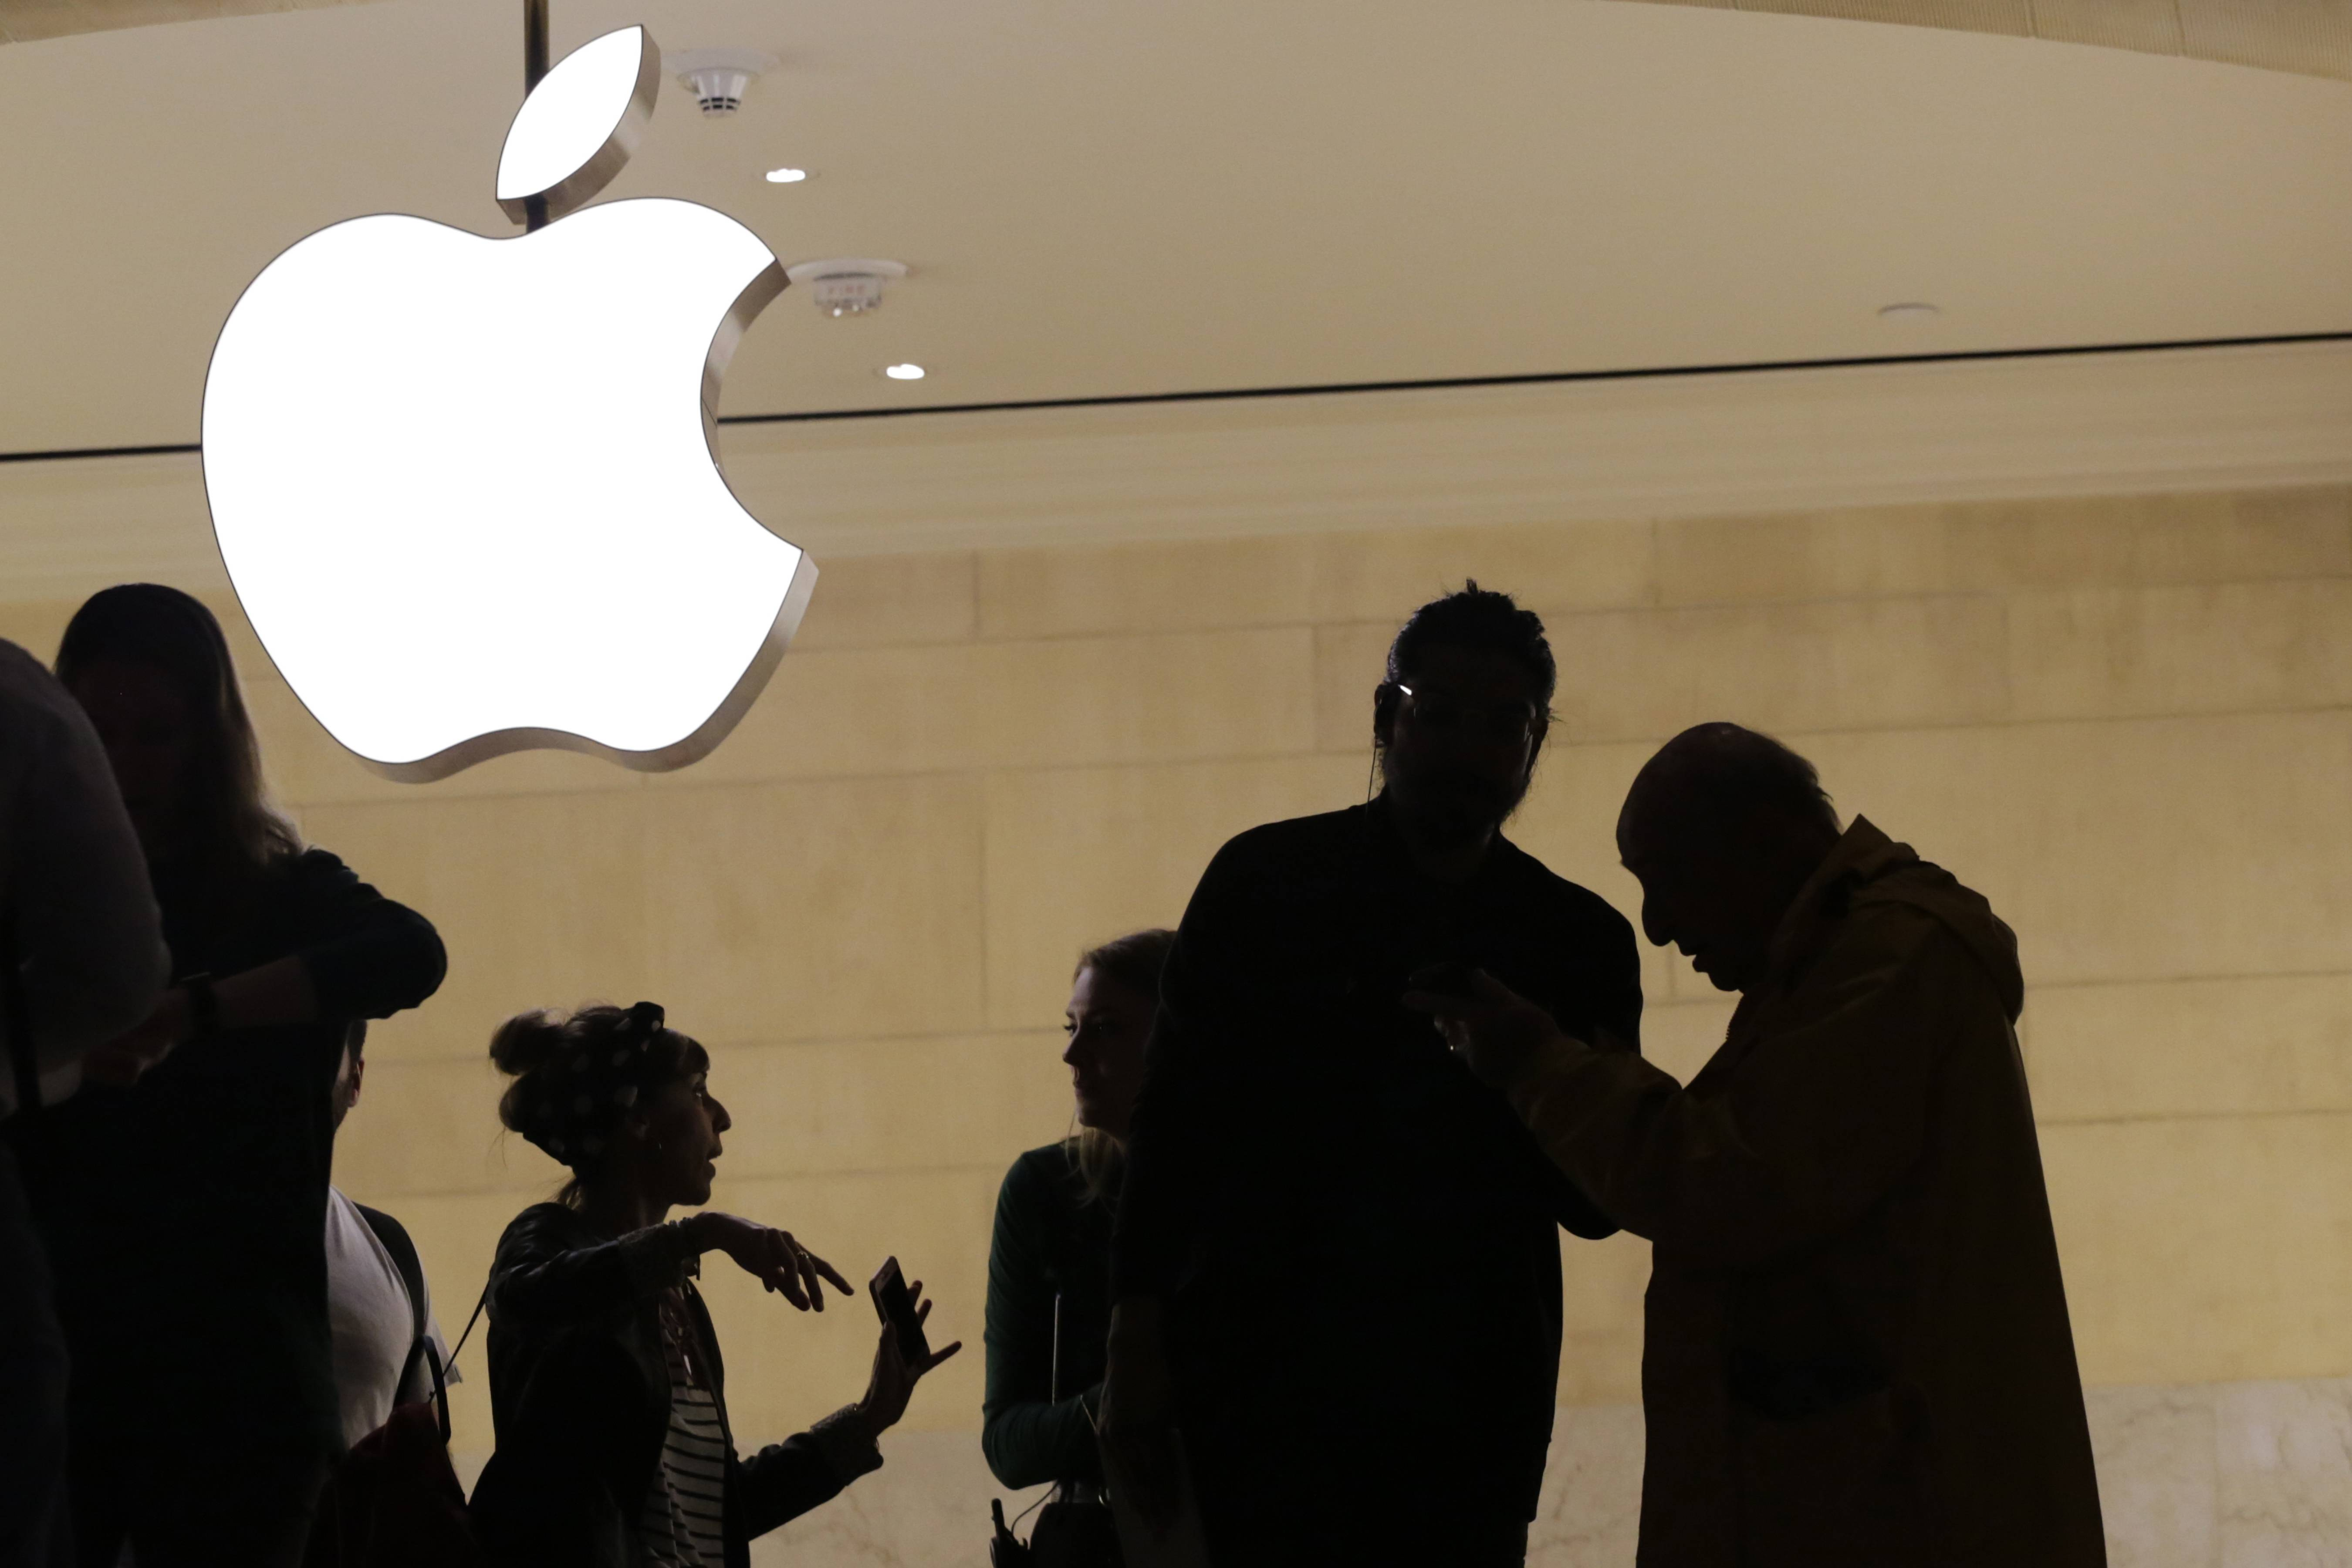 The Supreme Court is allowing consumers to pursue an antitrust lawsuit that claims Apple has unfairly monopolized the market for the sale of iPhone apps.